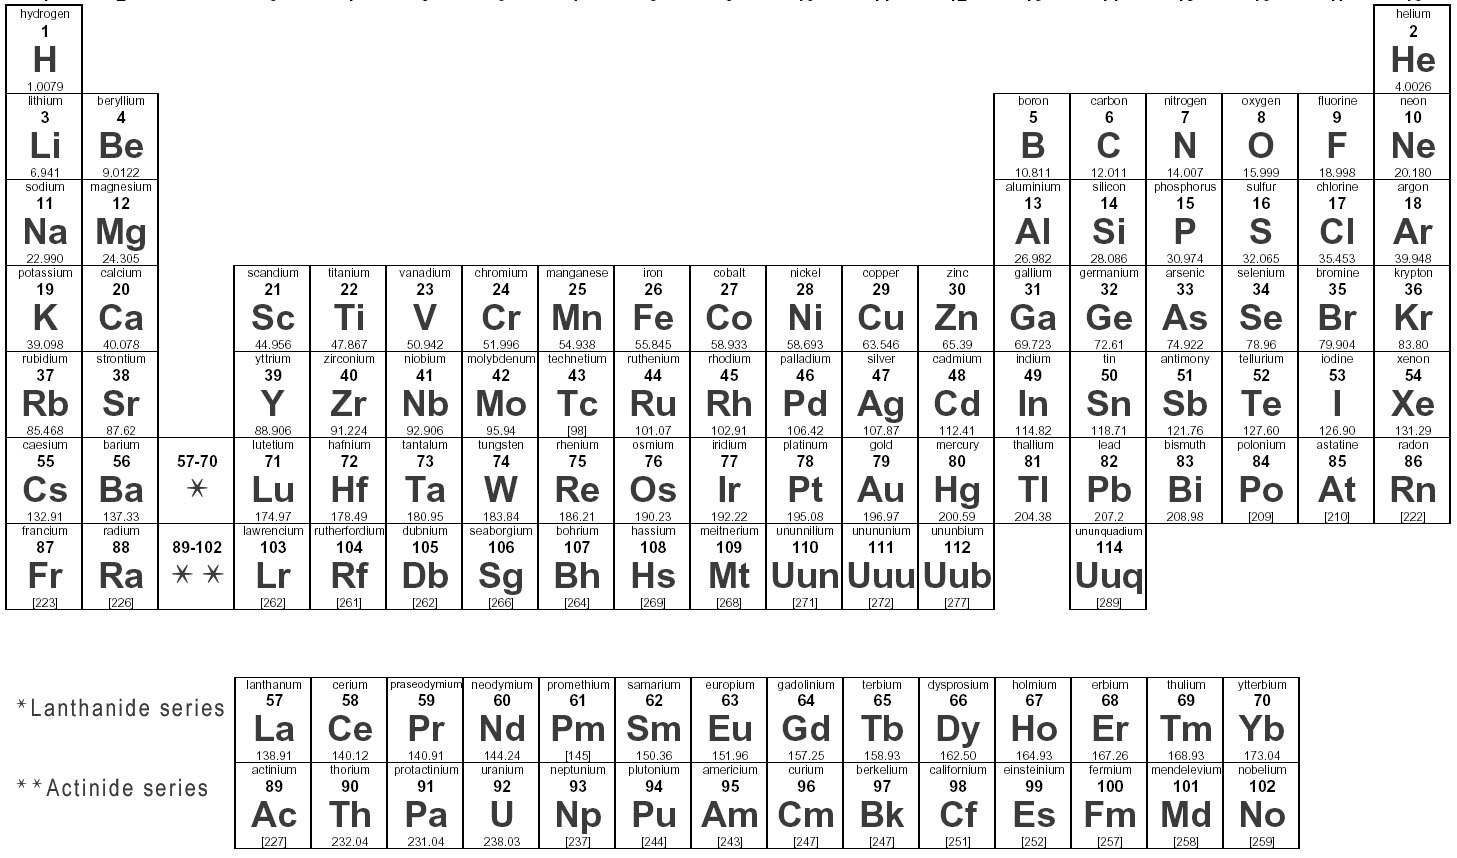 J h element 119 kariodisonium periodic table trends for Table th means